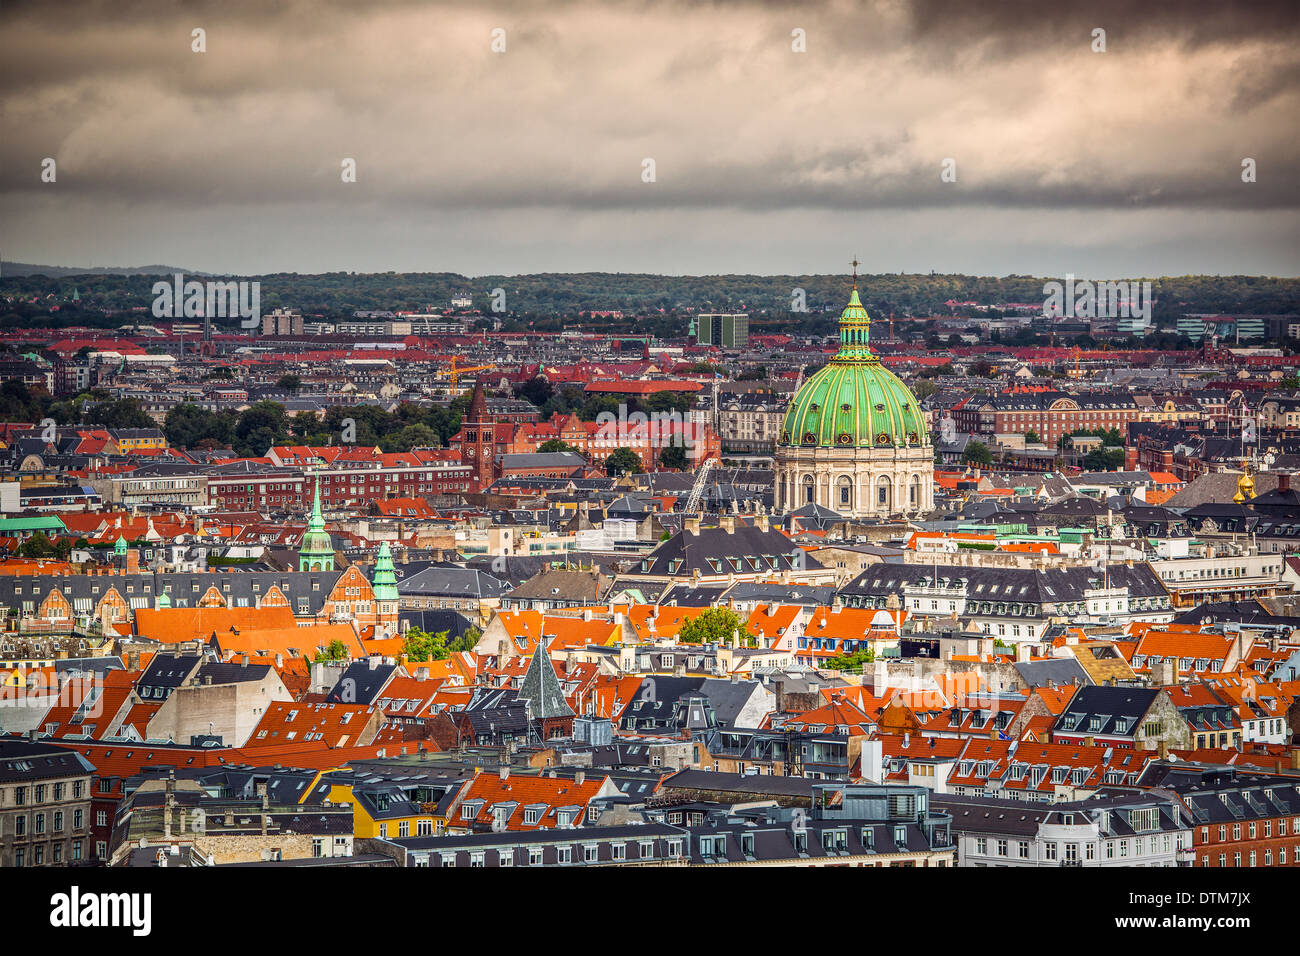 Copenhague, Danemark cityscape à l'église de marbre. Photo Stock